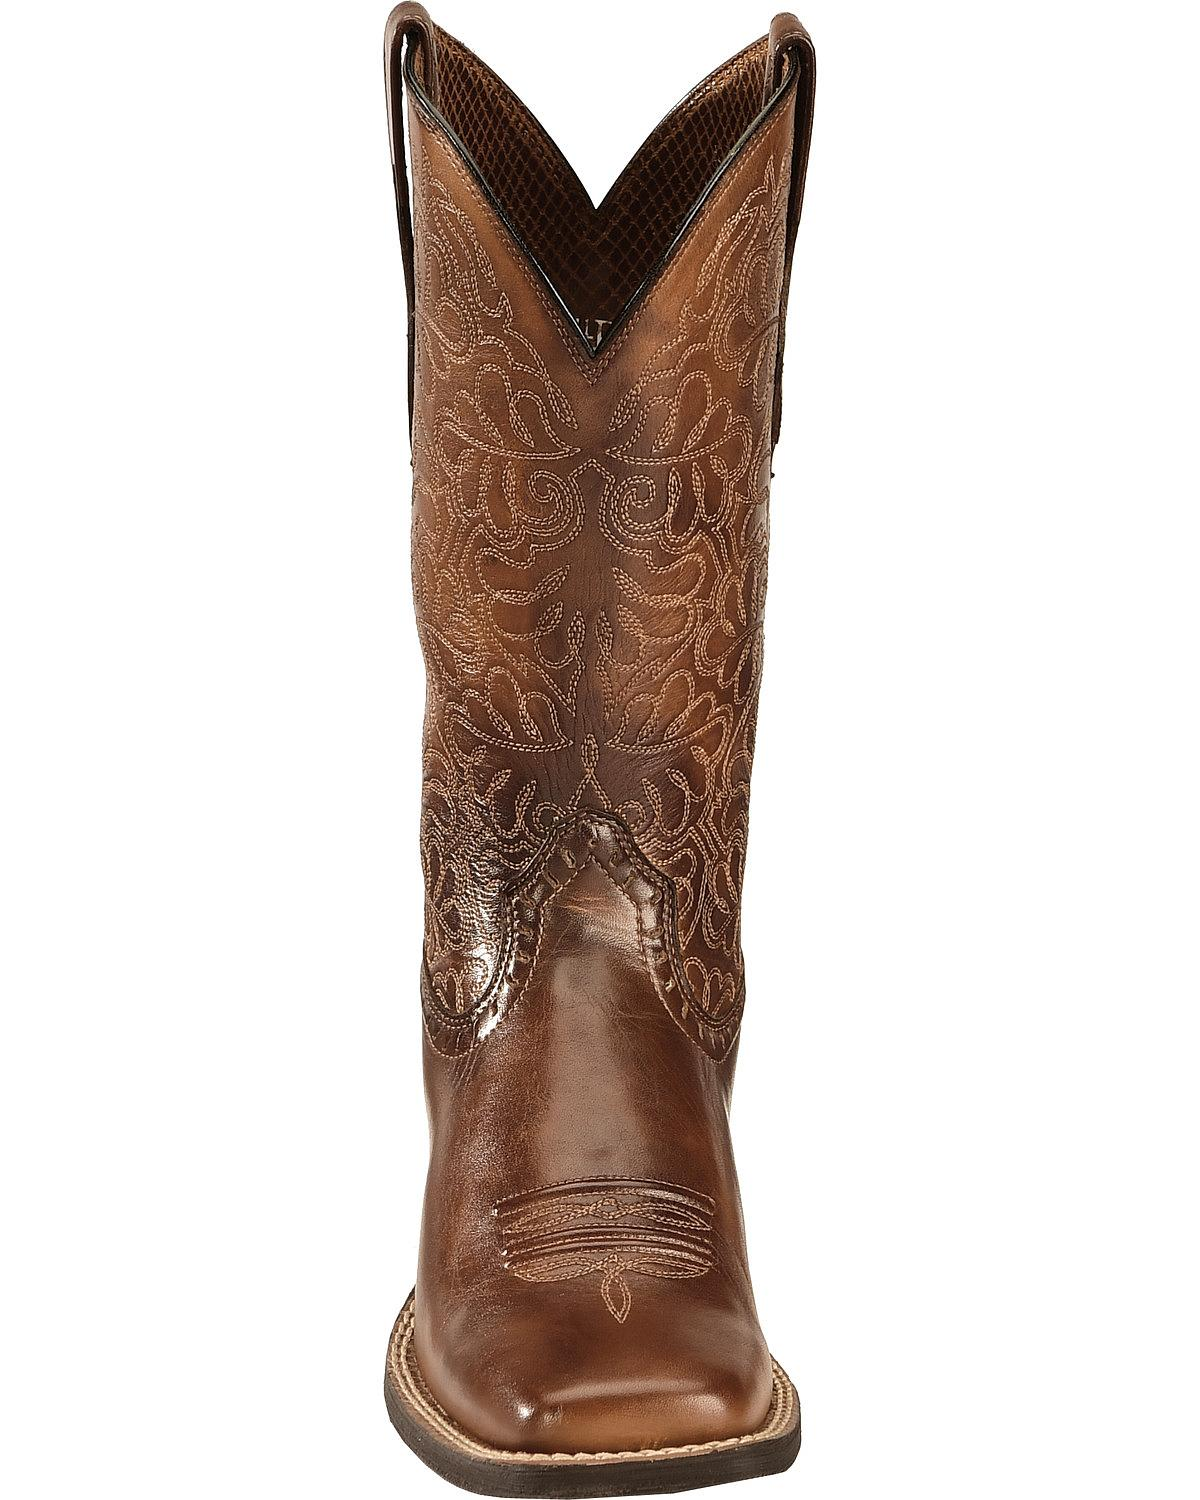 8ff043f5d71 Details about Ariat Rich Round Up Remuda Cowgirl Boot - Square Toe -  10019907